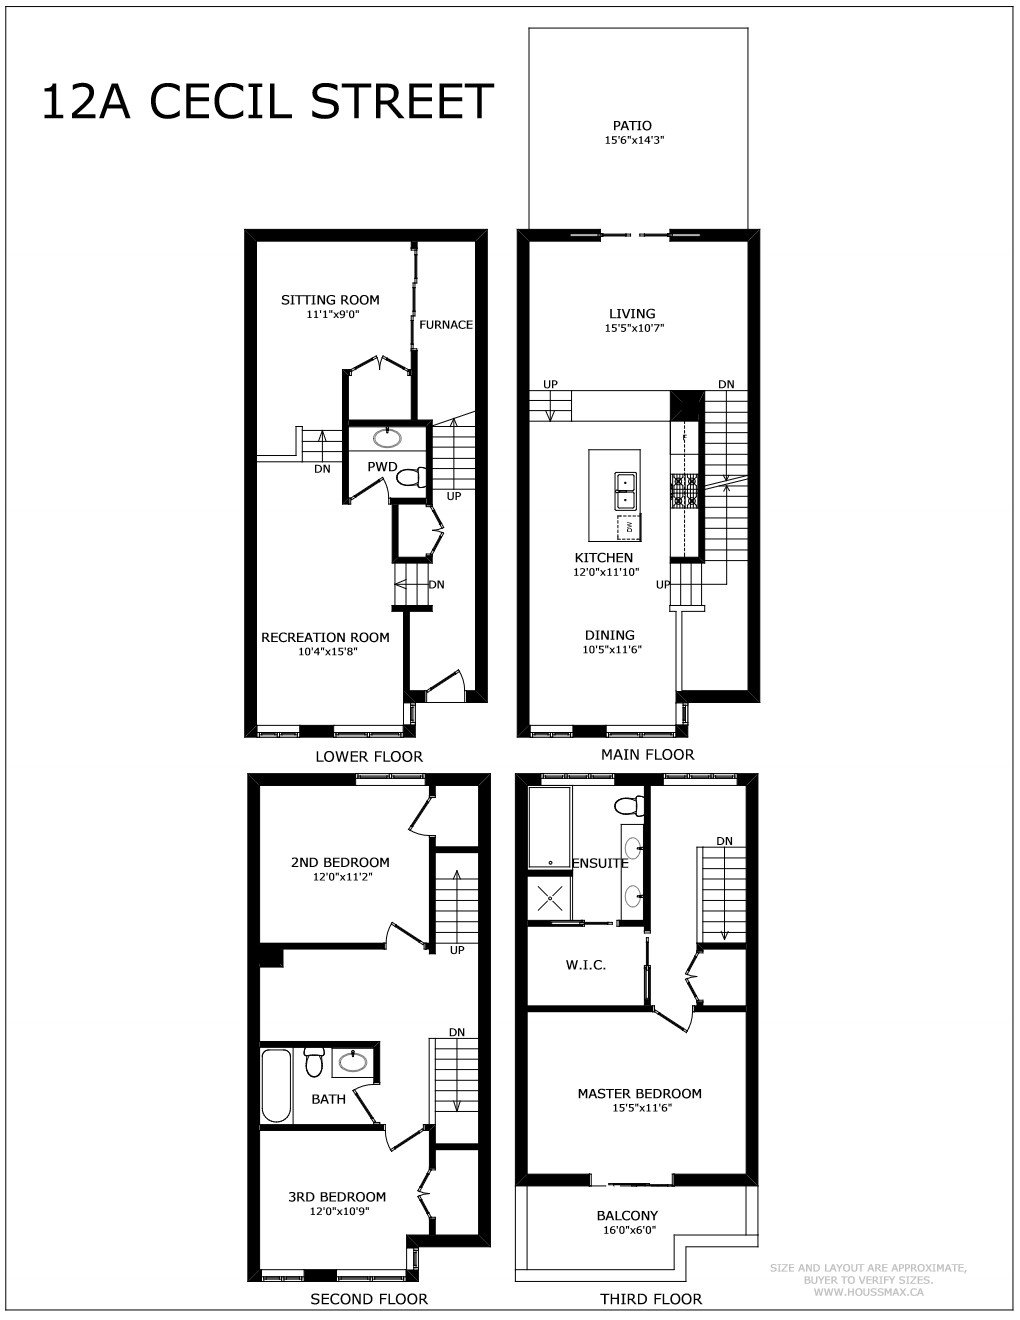 Floor plans for 12A Cecil townhouse